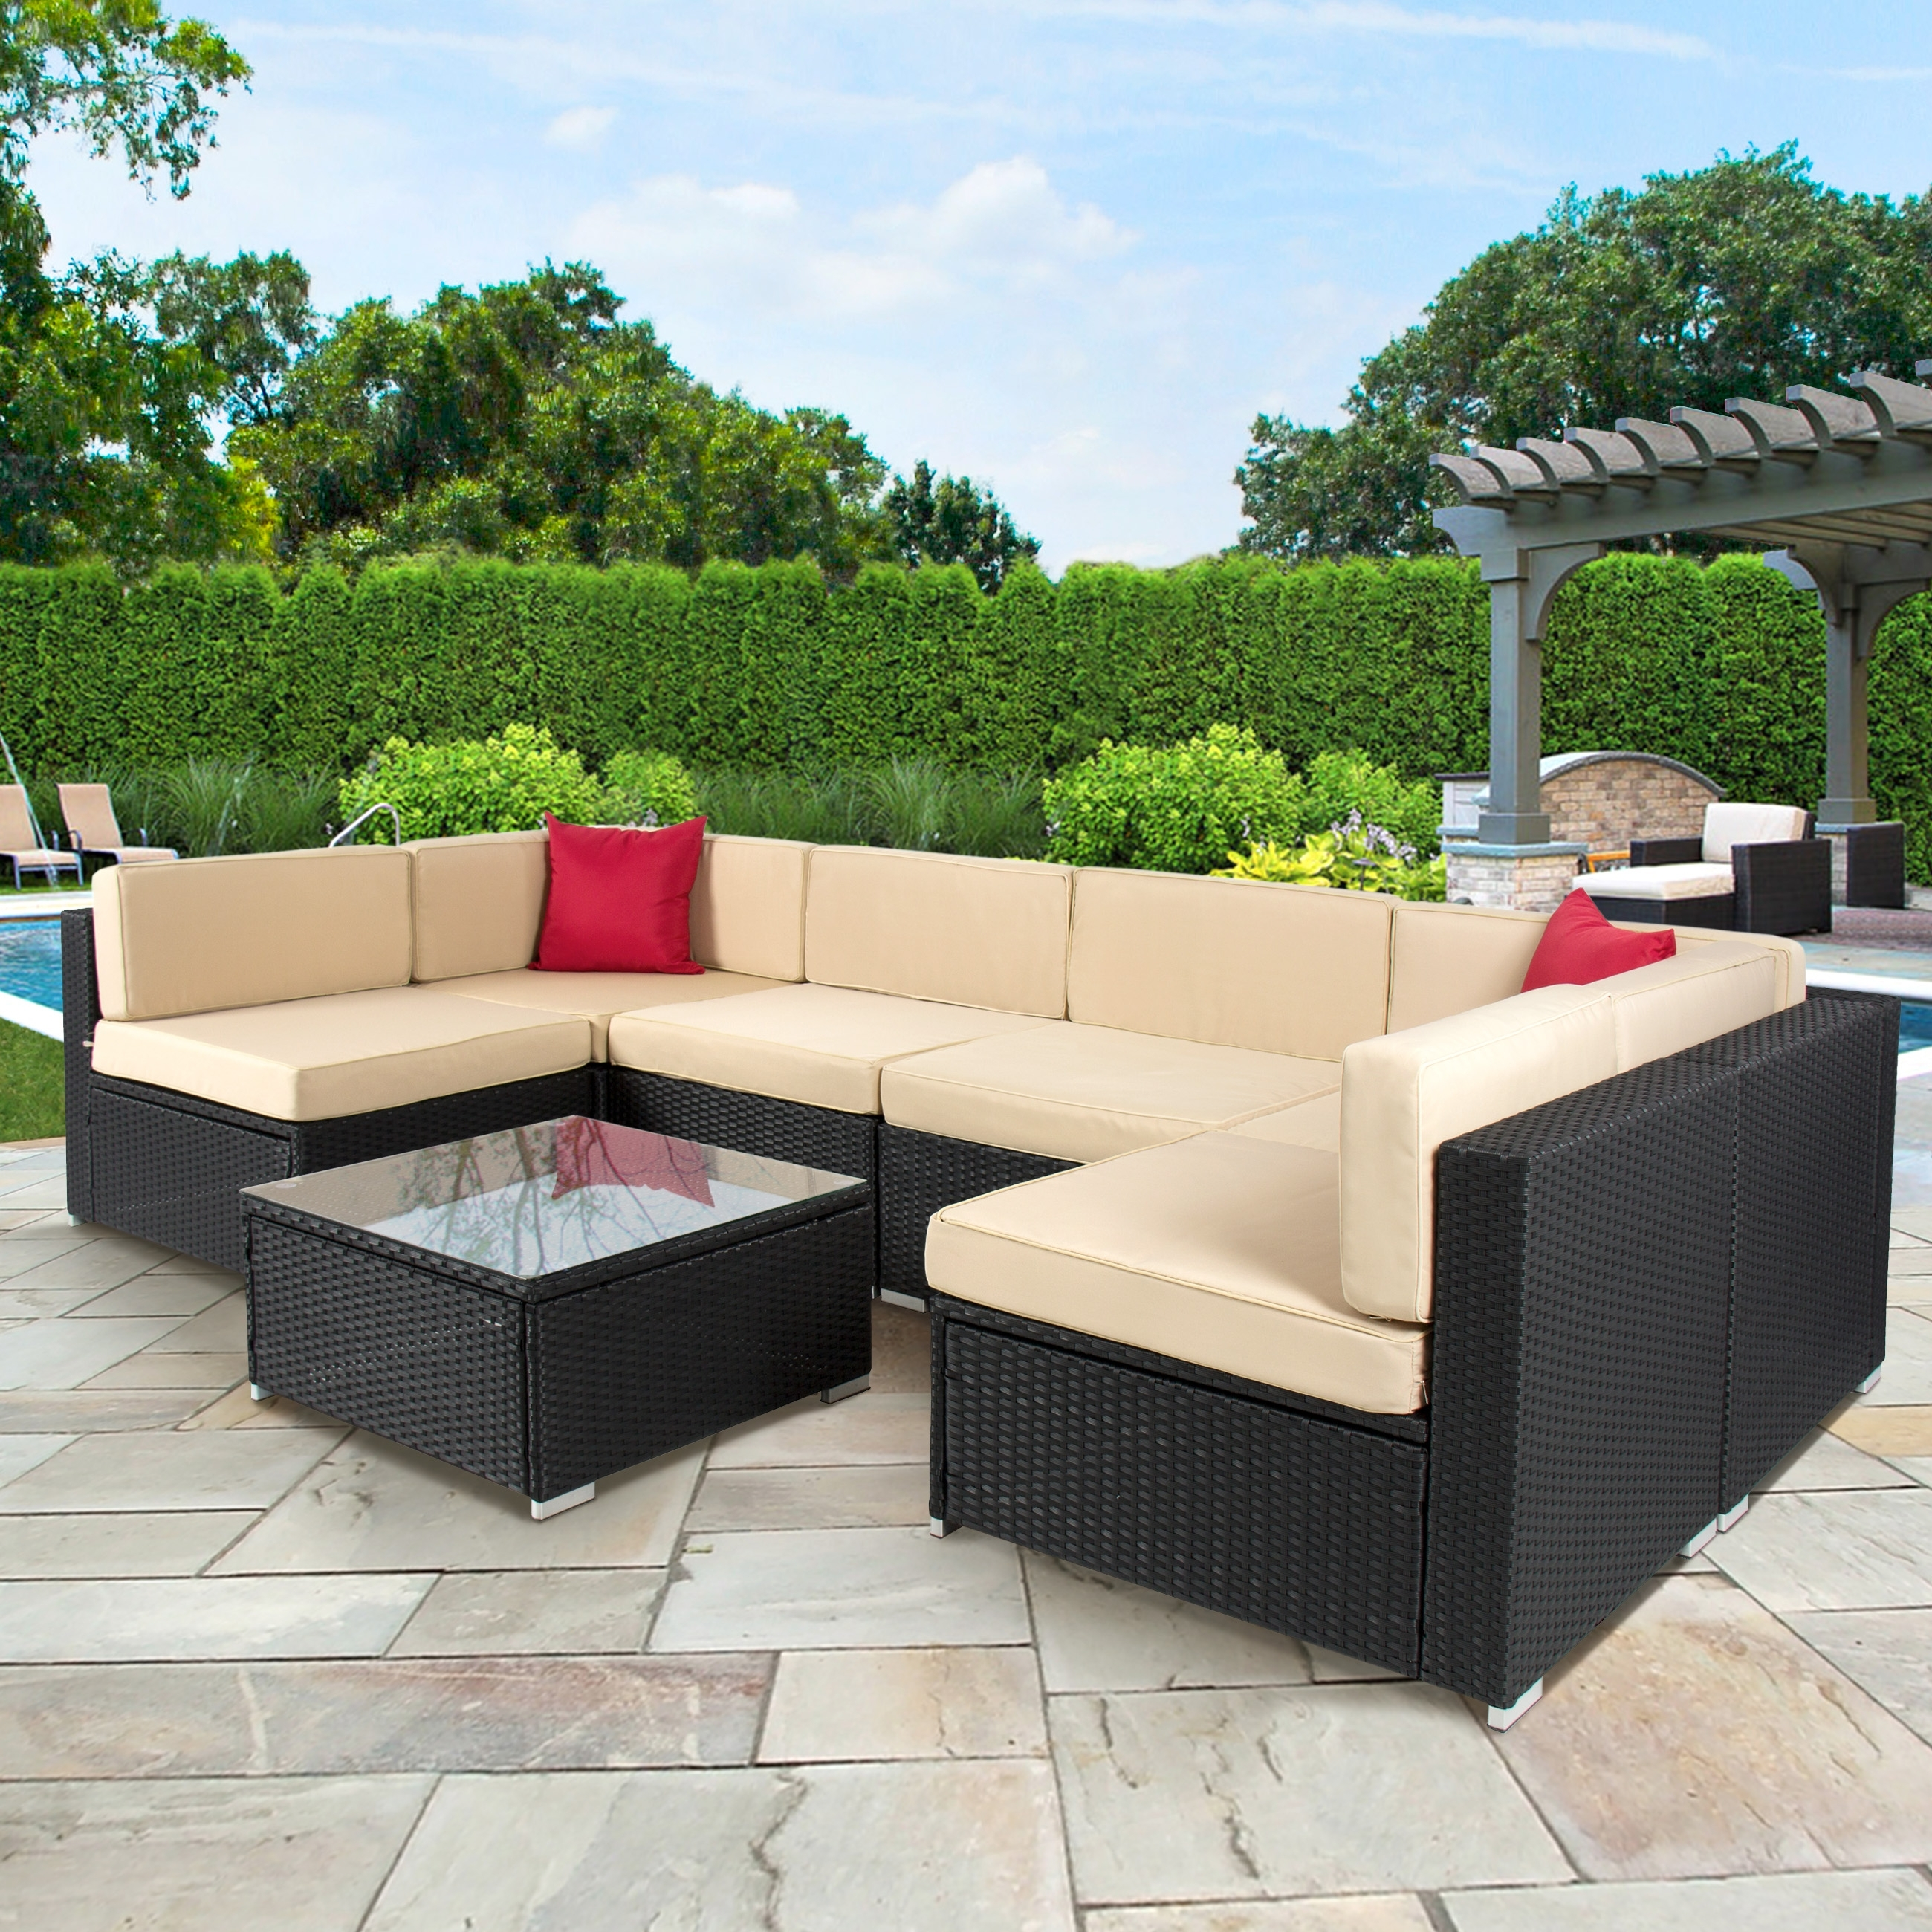 Baner Garden 4 Piece Outdoor Furniture Complete Set, Black – Walmart With Regard To Recent Patio Conversation Sets At Walmart (View 2 of 20)